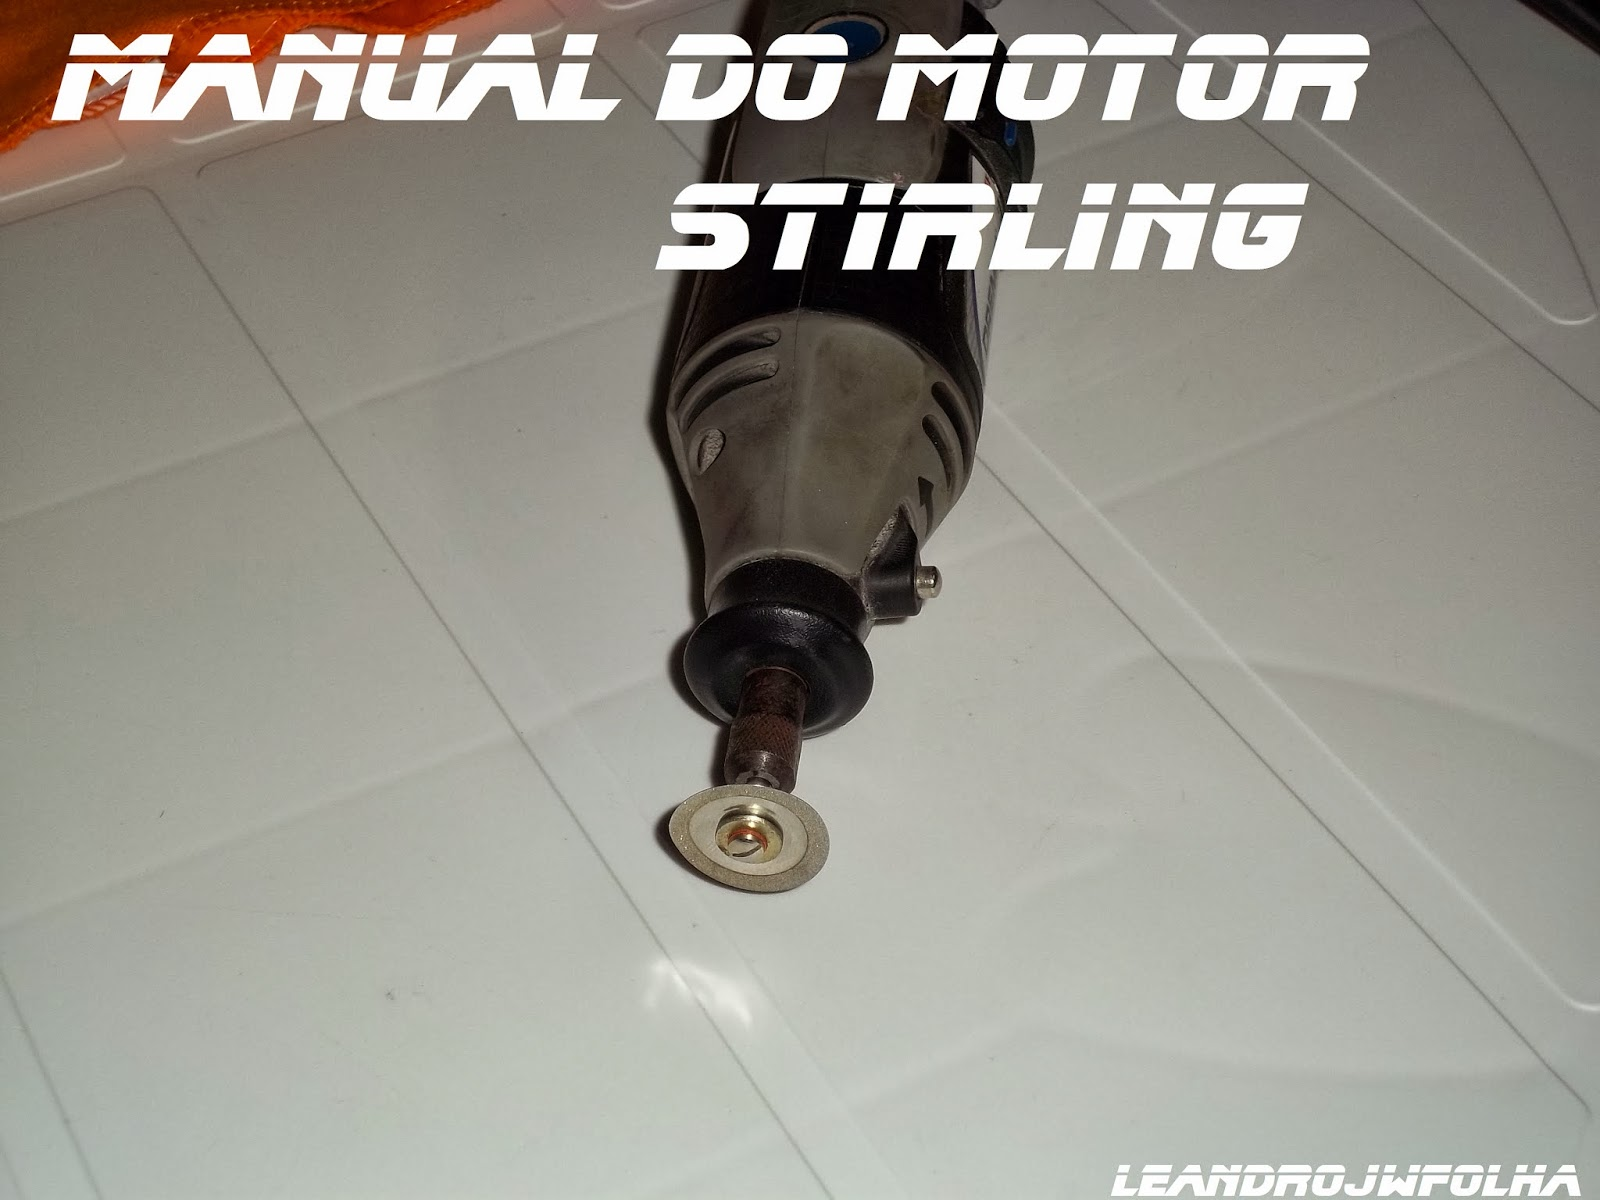 Manual do motor Stirling, mini retífica (Dremel)